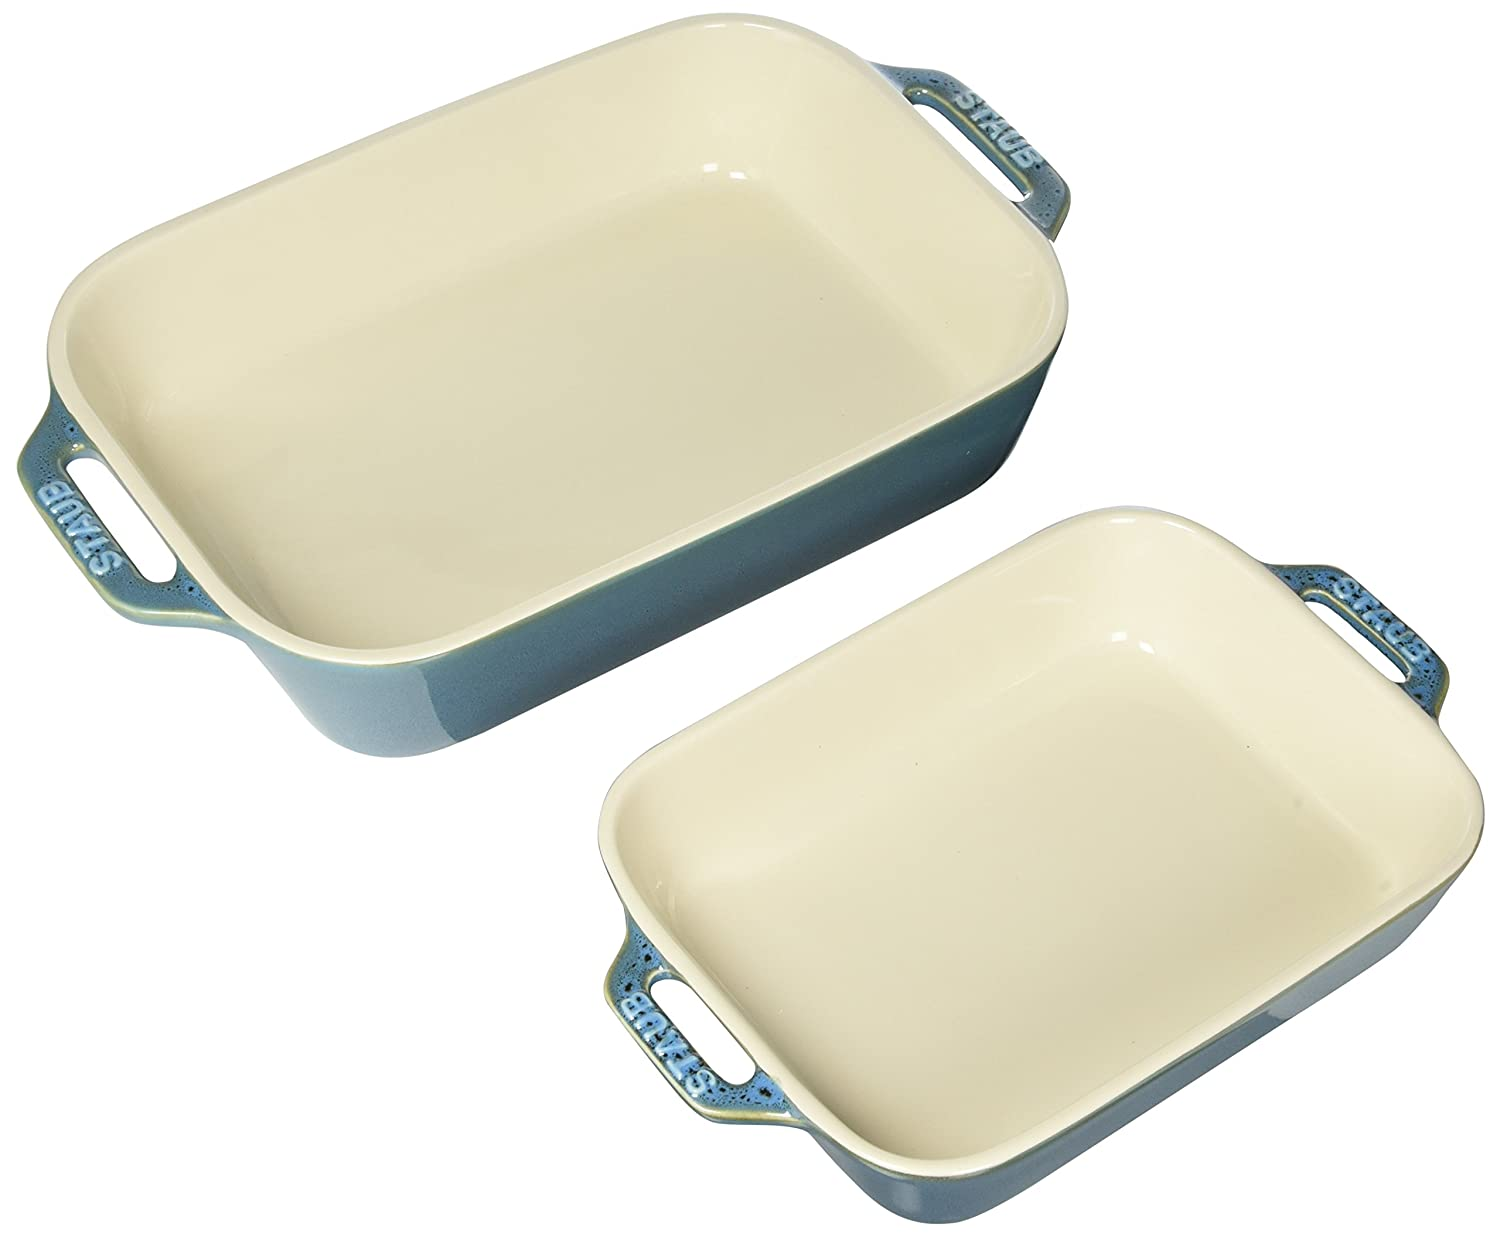 Staub Ceramic 2-pc Rectangular Baking Dish Set - Rustic Turquoise